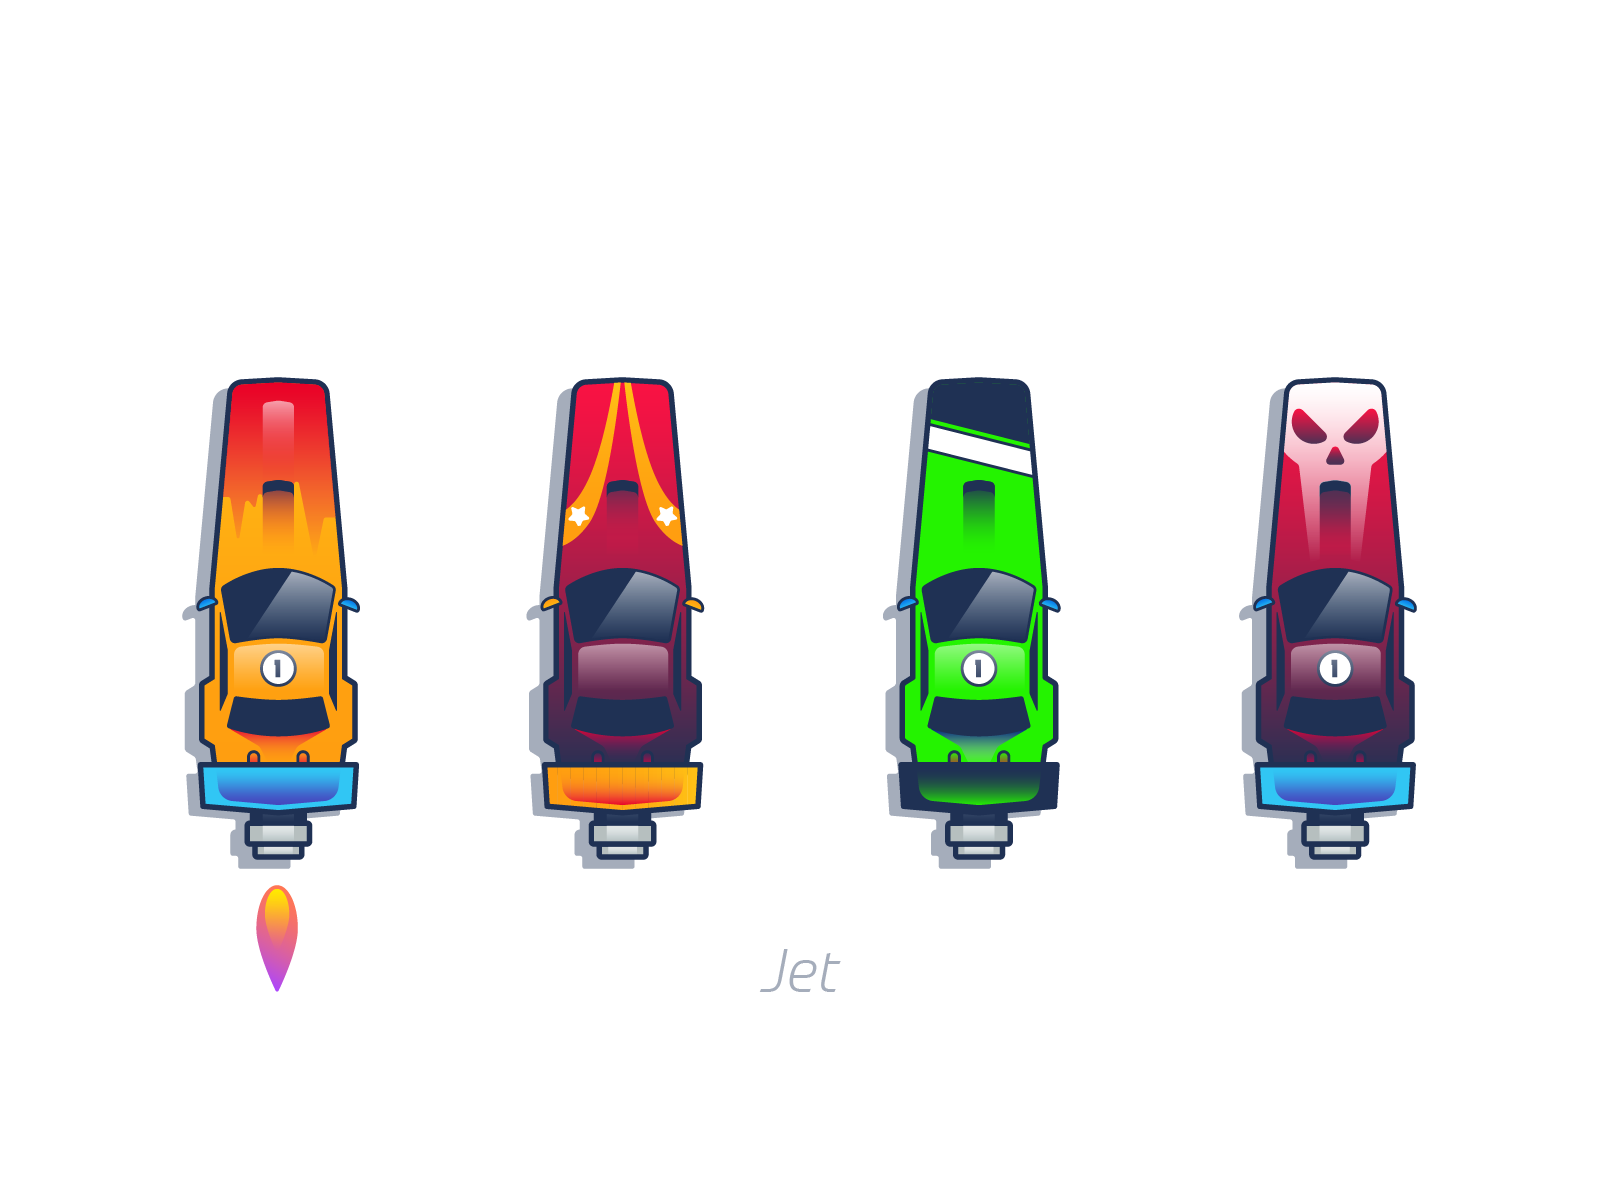 Jet cars graphic design illustration